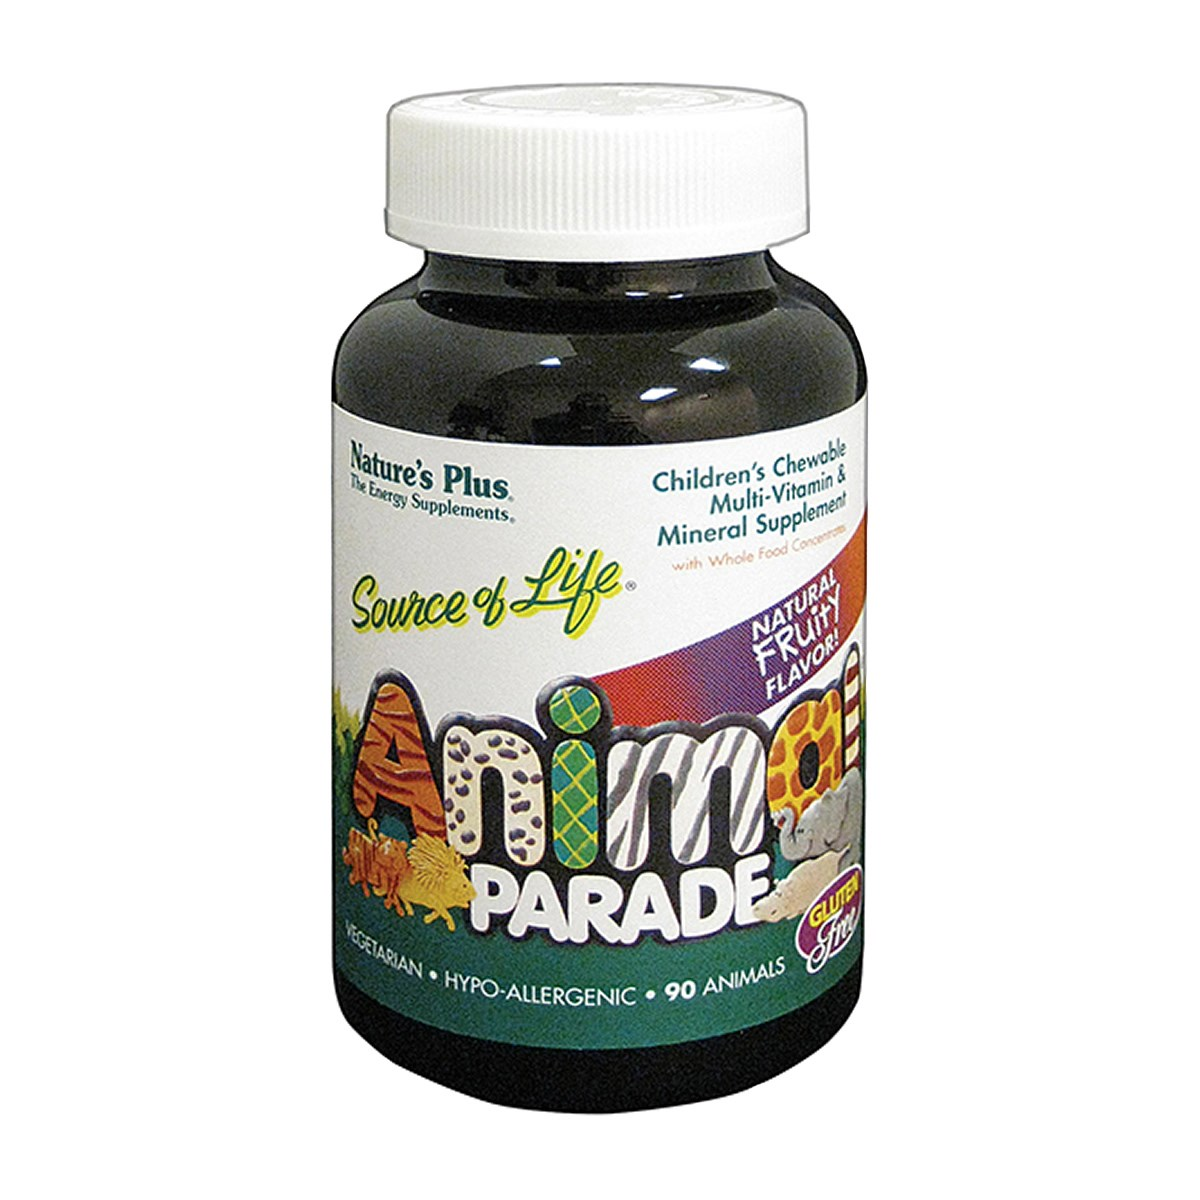 Natures Plus Source of Life Animal Parade - Assorted Chewables